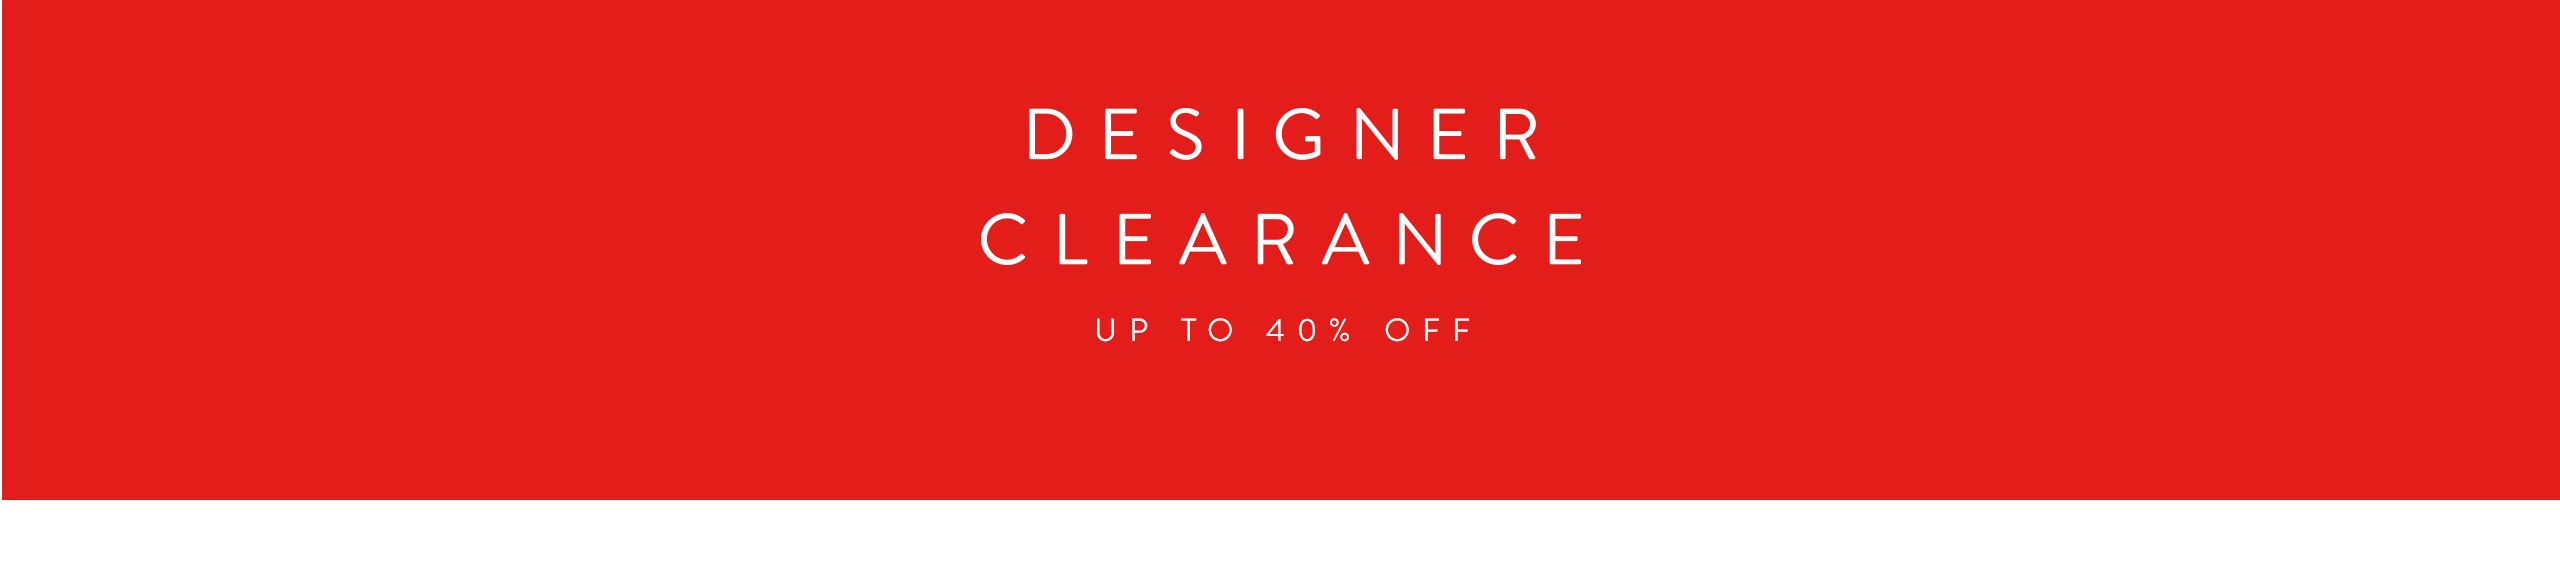 Designer clearance: Up to 40% off top women's, men's and kids' collections.